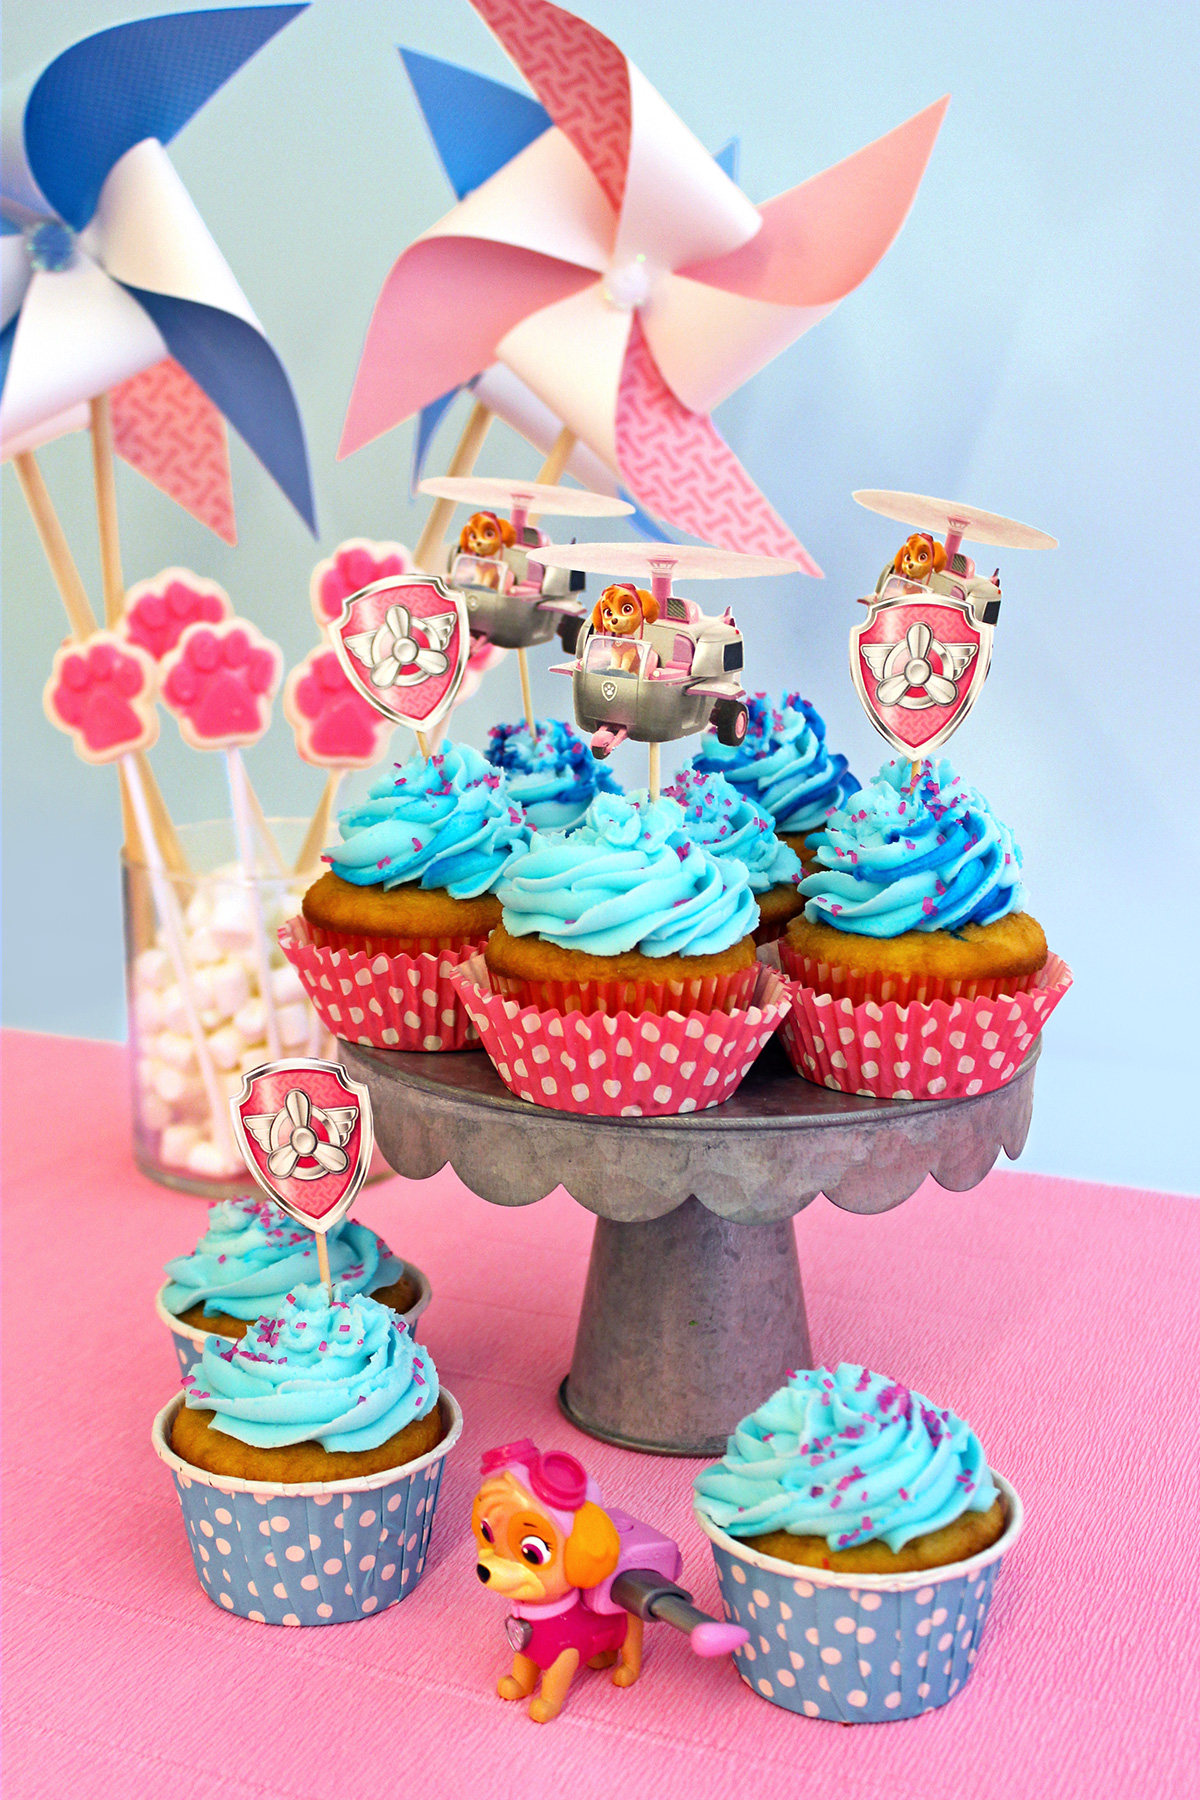 PAW Patrol Skye Birthday Party Cupcakes